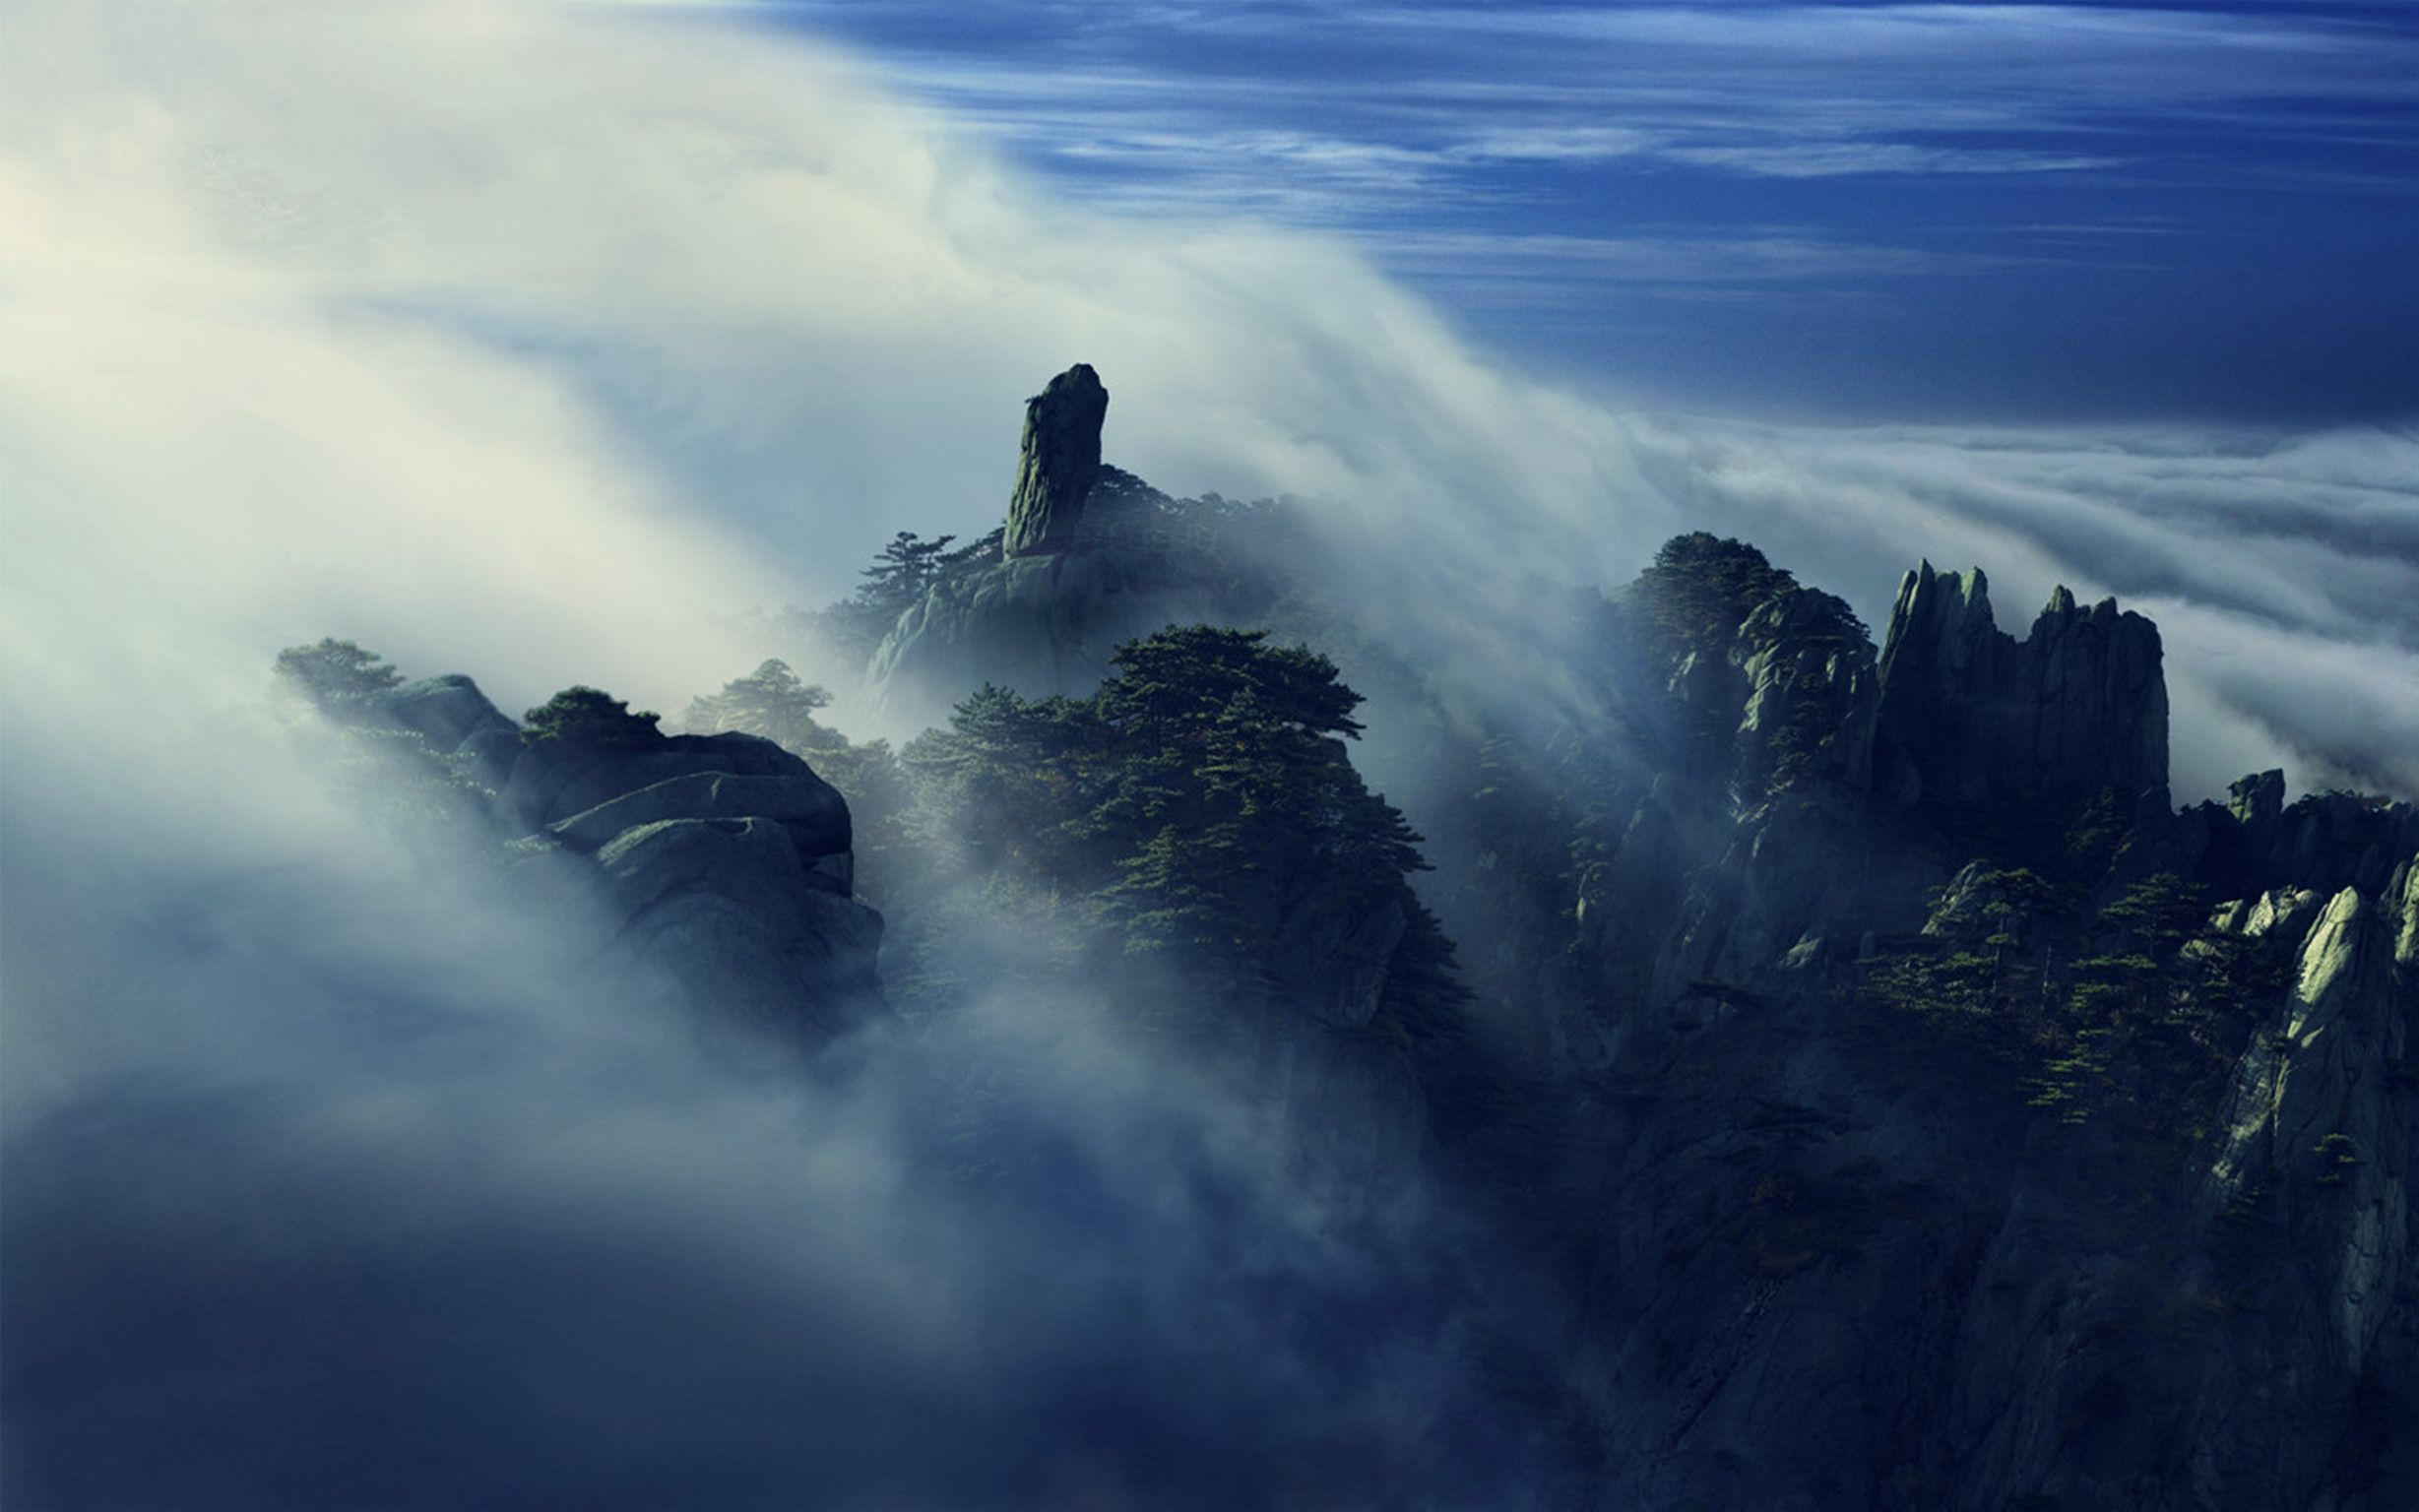 3-Day_Beijing_Huangshan_Sightseeing_Tour_with_Round-trip_High-speed_Train.jpg